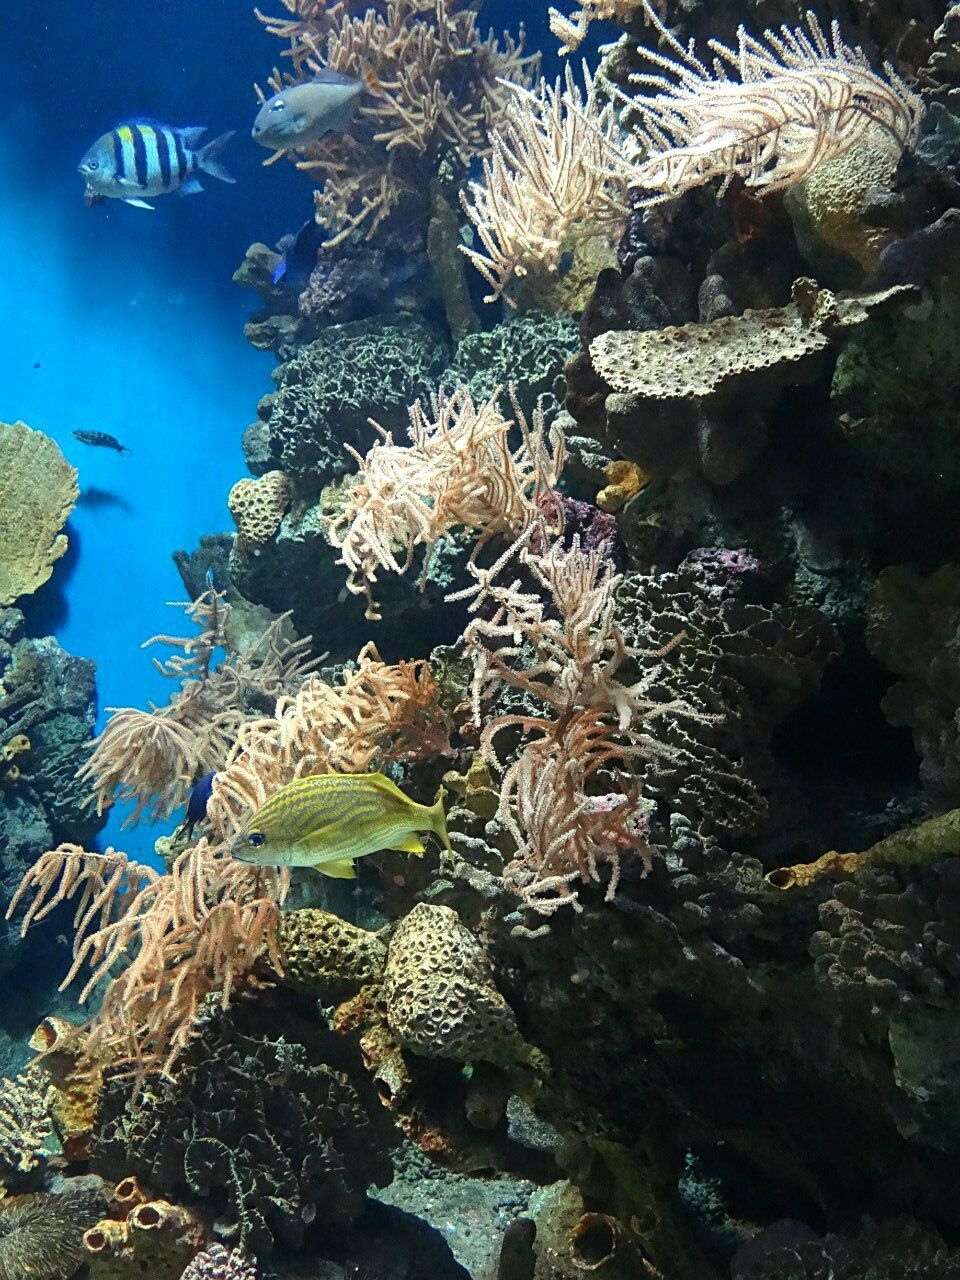 underwater, undersea, coral, sea life, nature, animals in the wild, sea, reef, water, animal themes, fish, no people, large group of animals, beauty in nature, swimming, animal wildlife, scuba diving, clown fish, day, outdoors